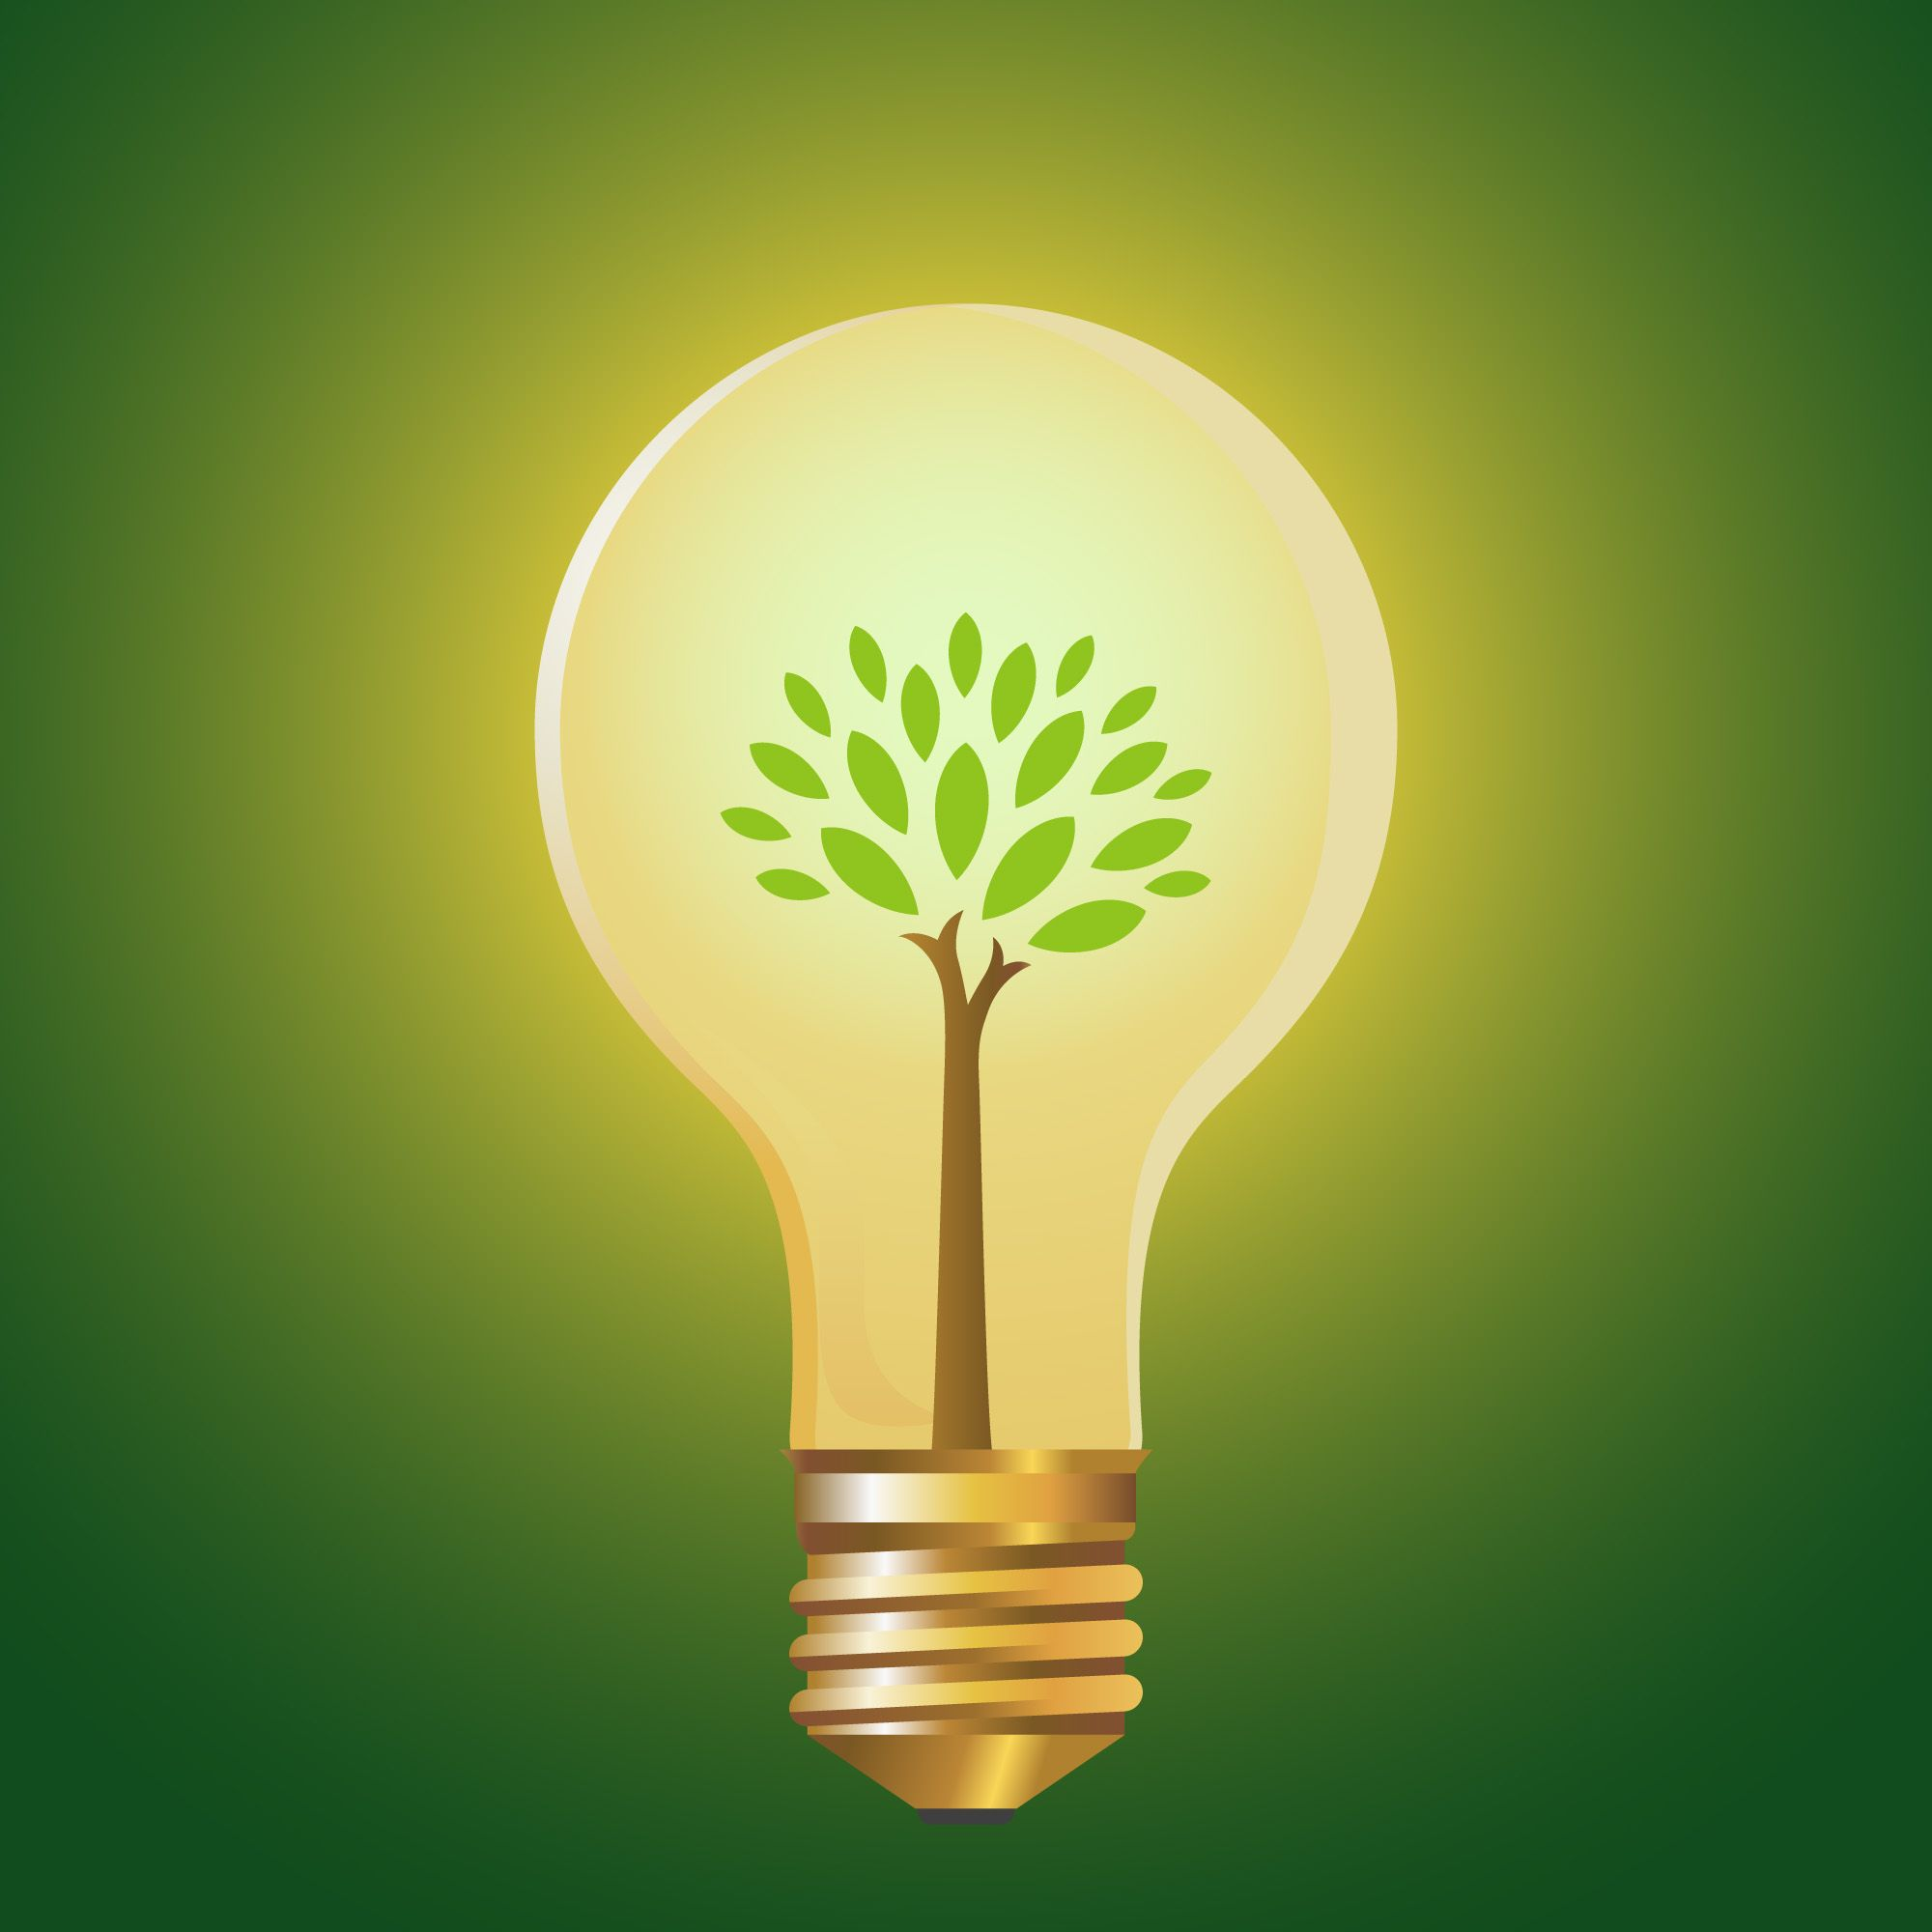 Light Bulb Light Bulb With Tree Energy Conservation Green Energy Save Electricity